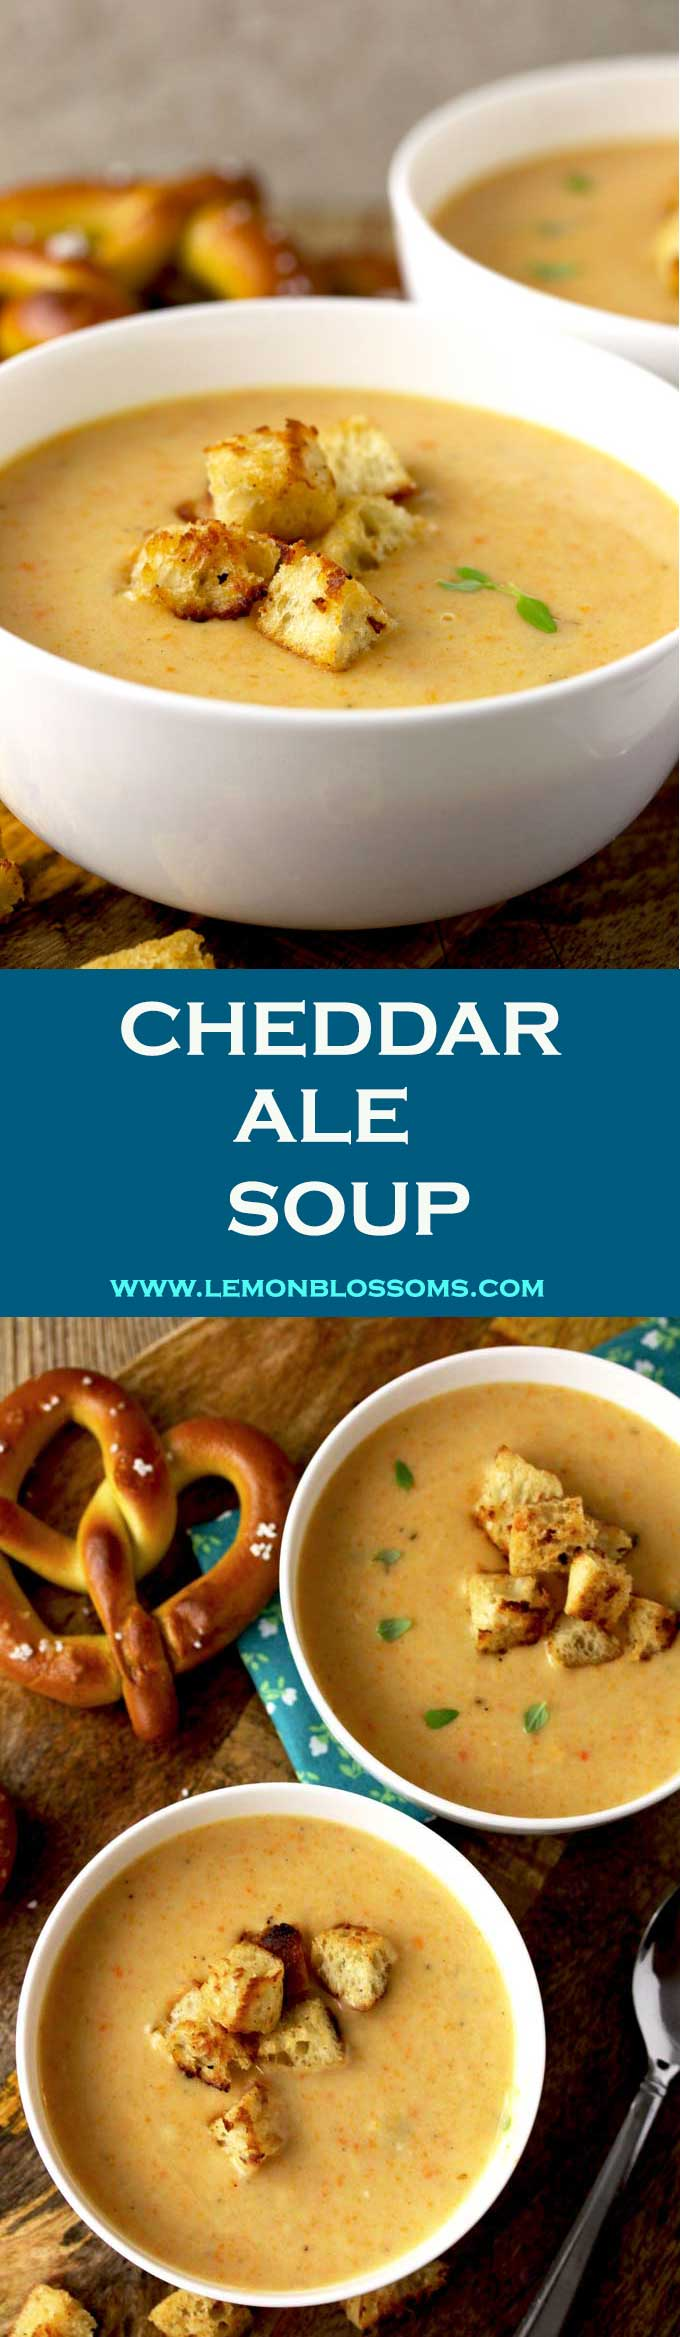 This Cheddar Ale Soup is thick, creamy, smooth and full of cheesy-goodness! Made with a light ale and a medium aged cheese to prevent bitterness. Very easy to make and ready in a bit less than 30 minutes! #cheddar #cheese #ale #beer #soup